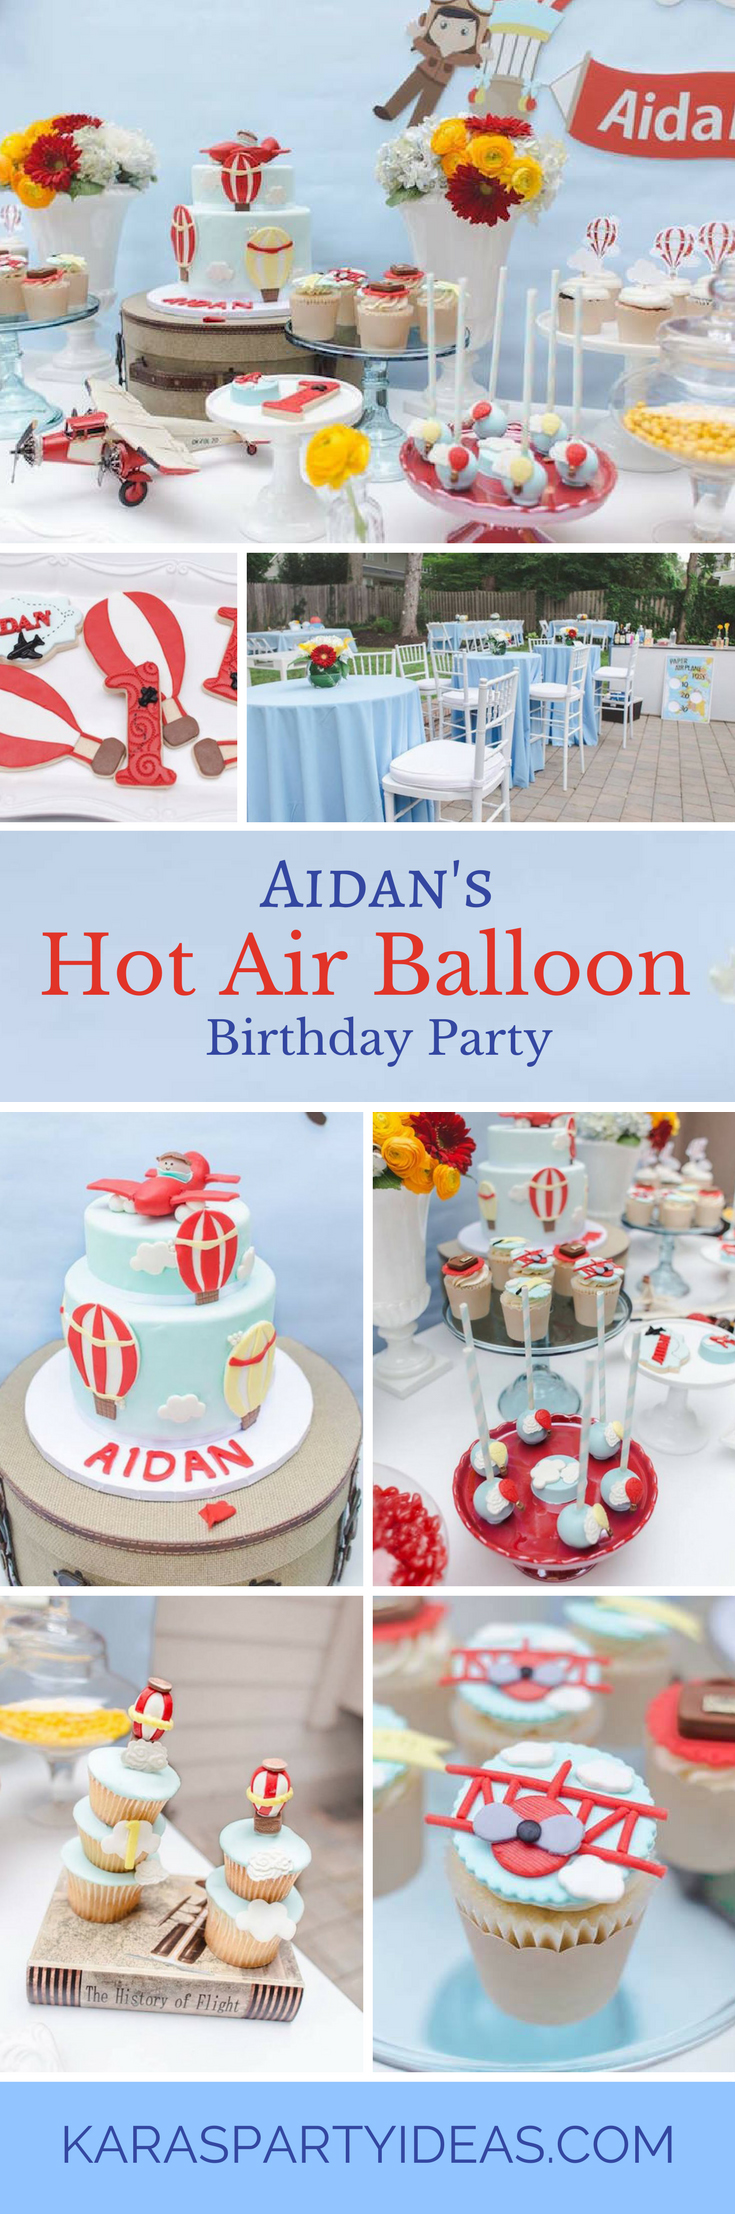 Aidans Hot Air Balloon Birthday Party - Karas Party Ideas via KarasPartyIdeas.com